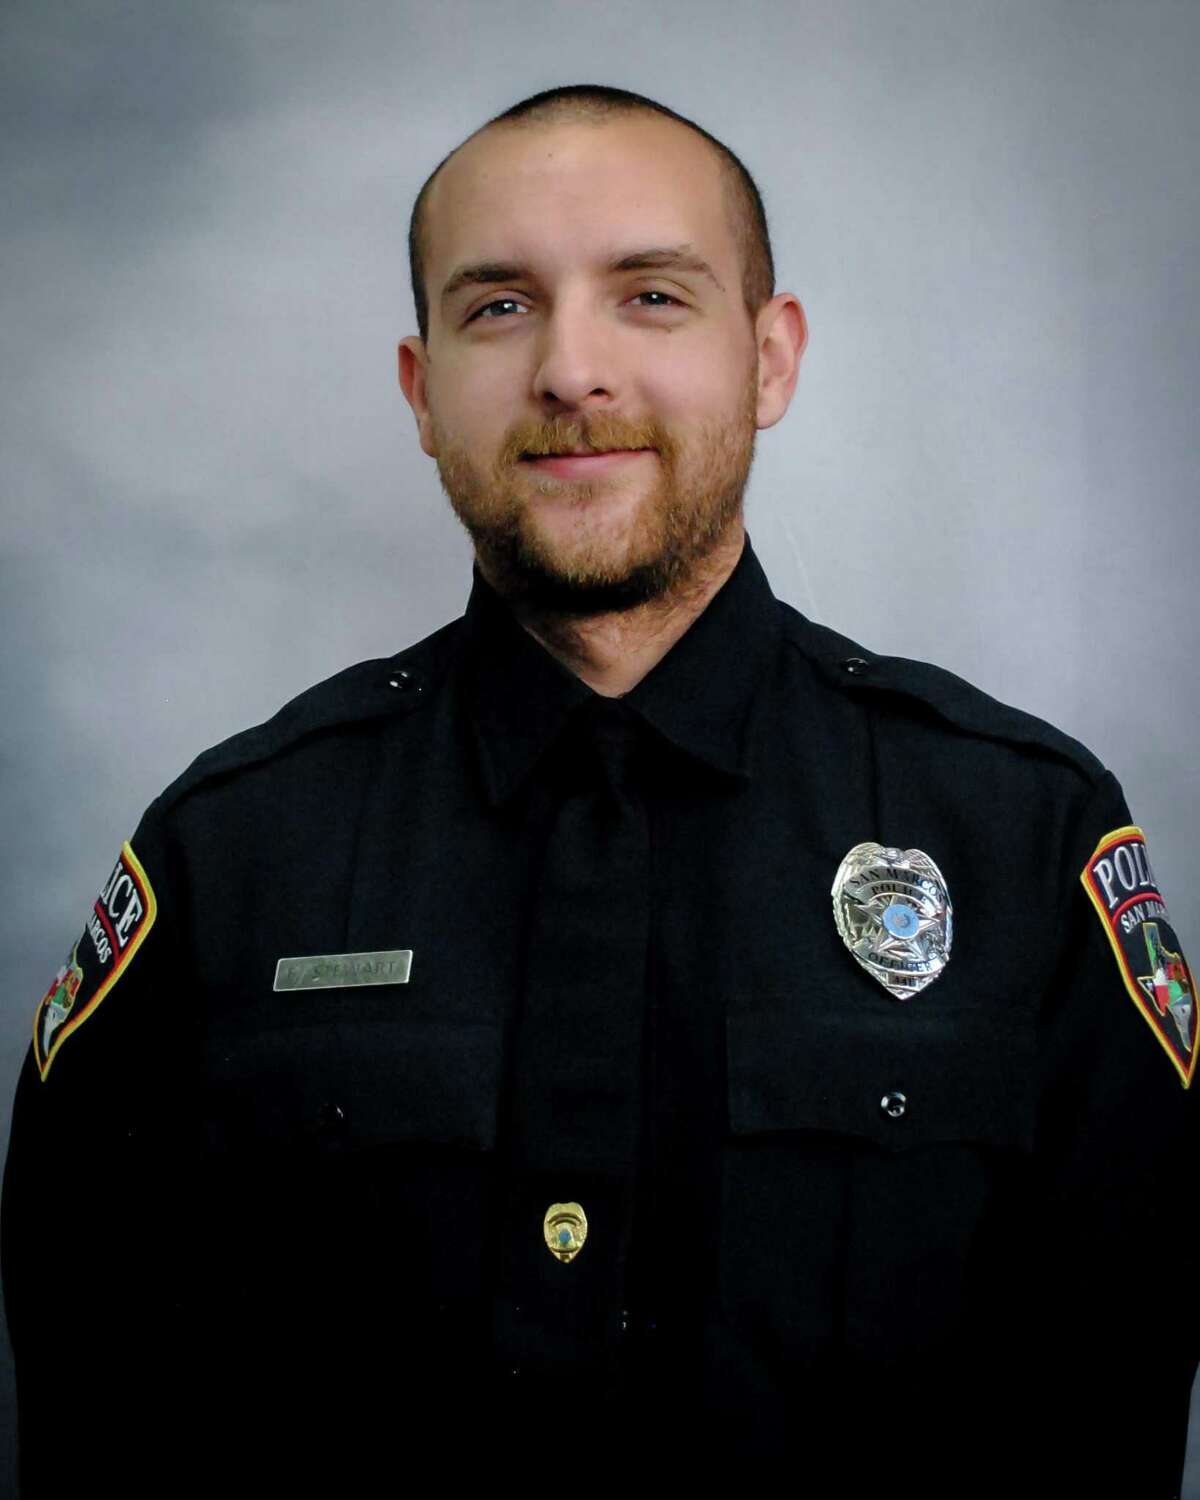 San Marcos police Officer Franco Stewart was critically injured in a shooting Saturday night. Franco, 27, remains in critical but stable condition, officials said Sunday.